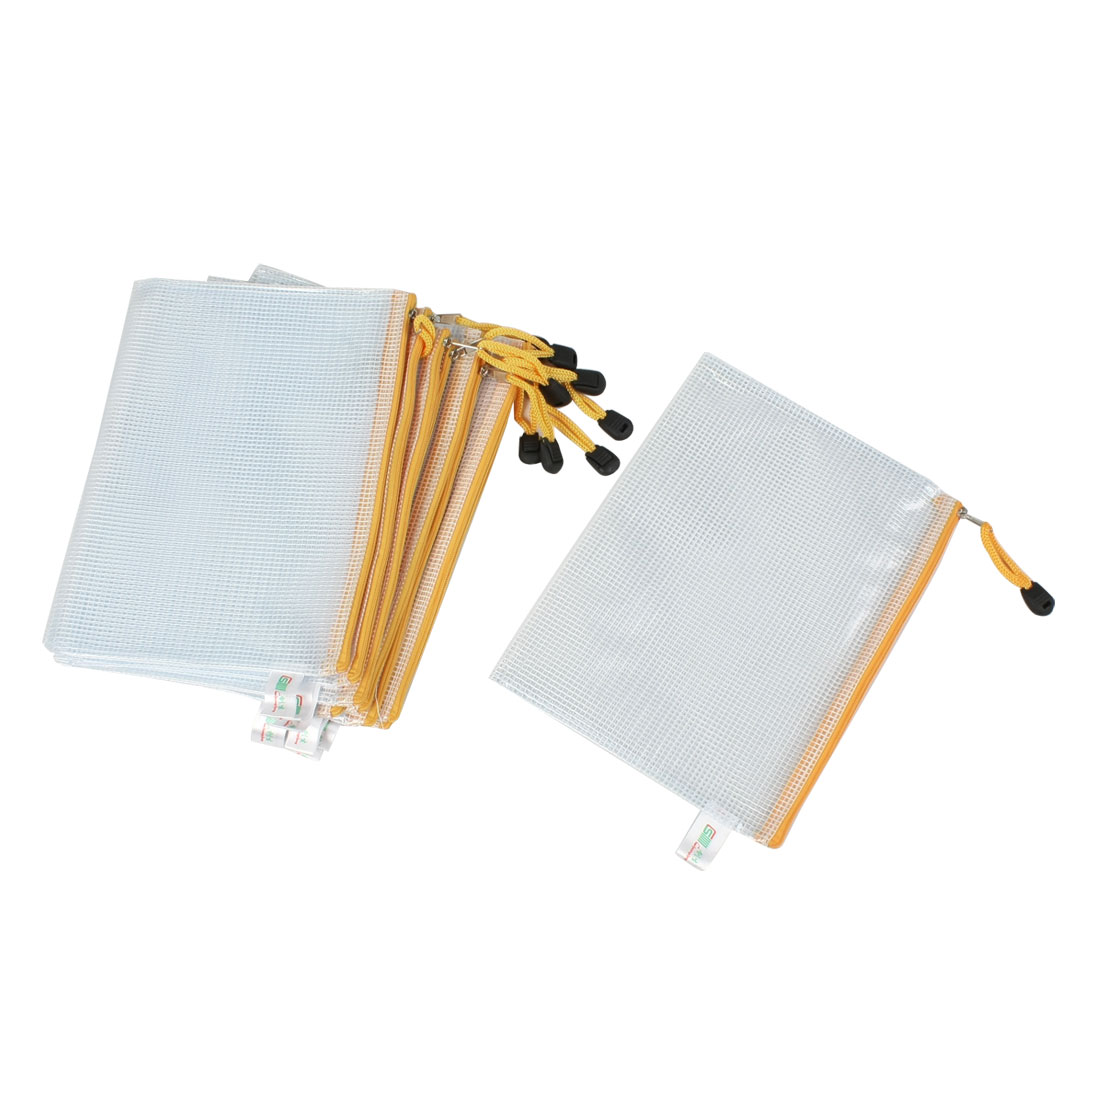 10 Pcs A5 Grid Yellow Zipper Closure File Folders Pocket Clear